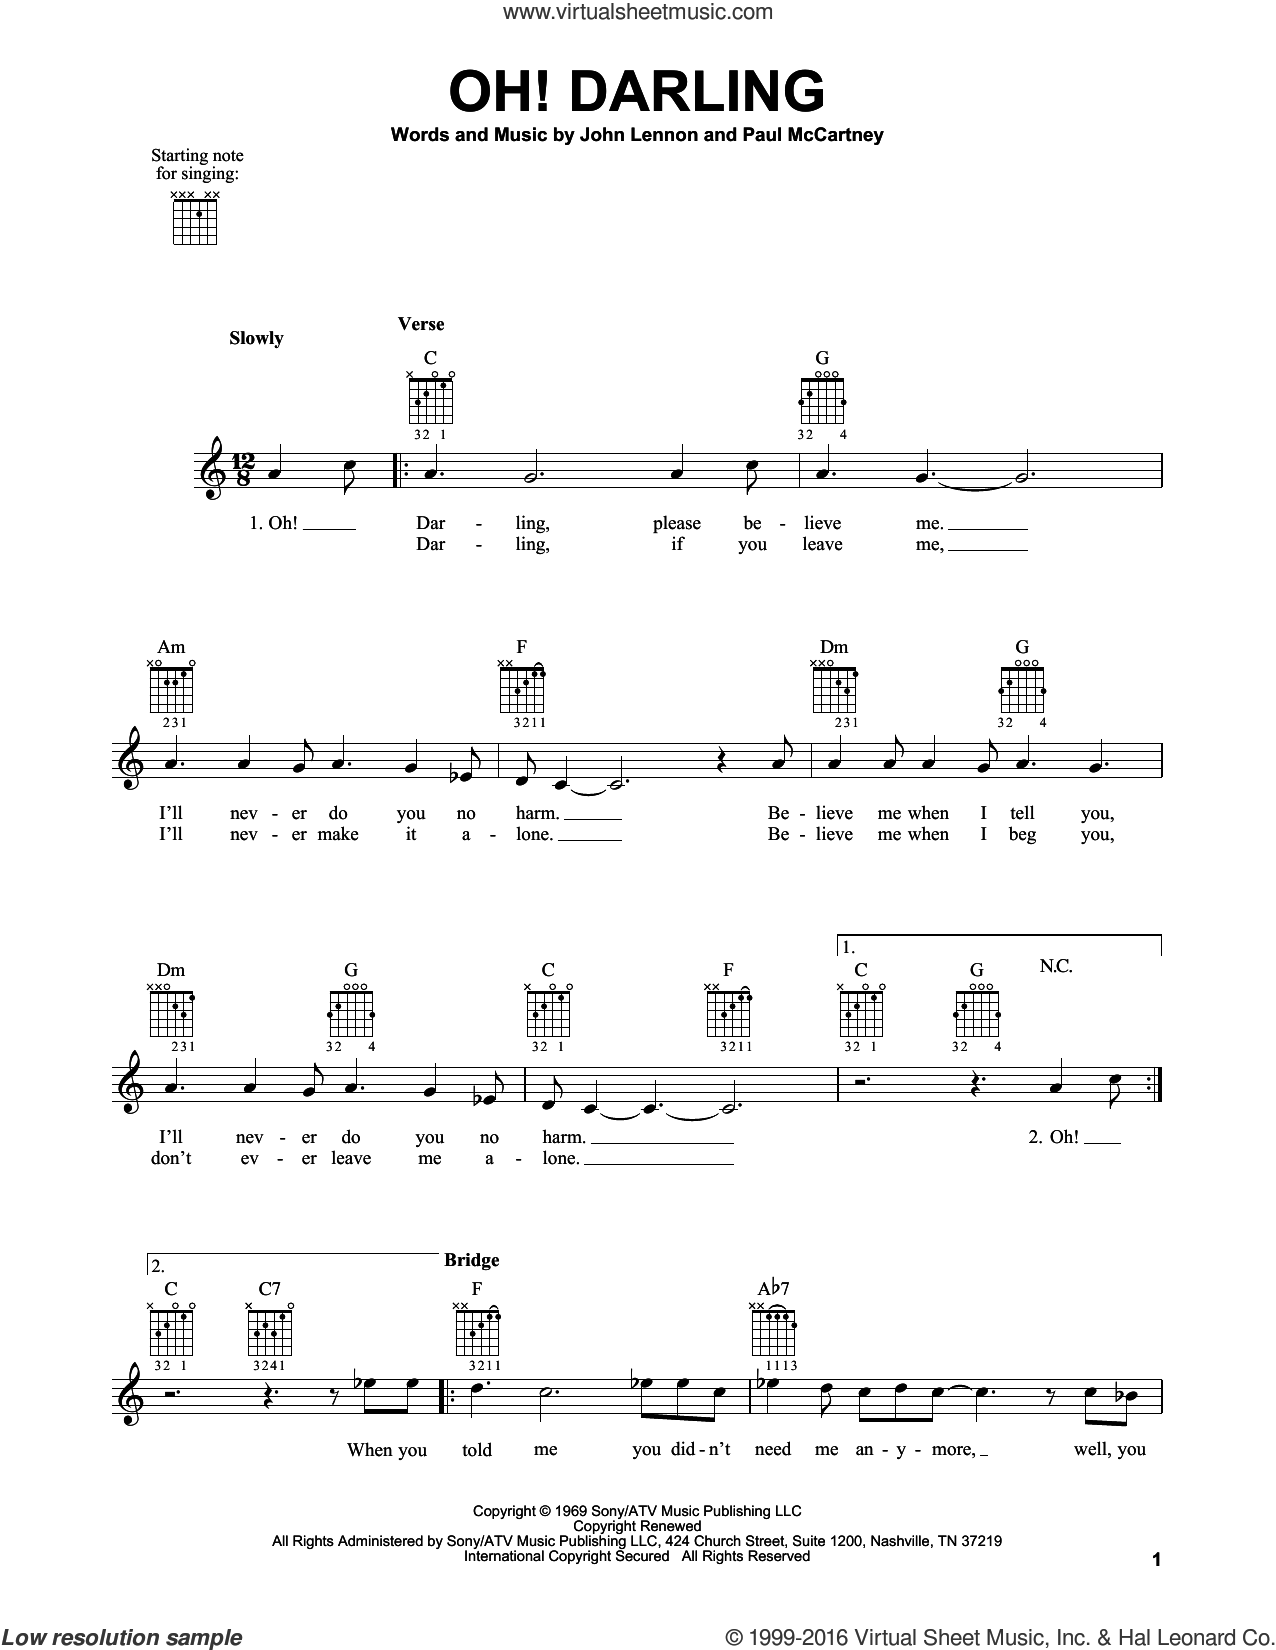 Oh! Darling sheet music for guitar solo (chords) by Paul McCartney, The Beatles and John Lennon. Score Image Preview.